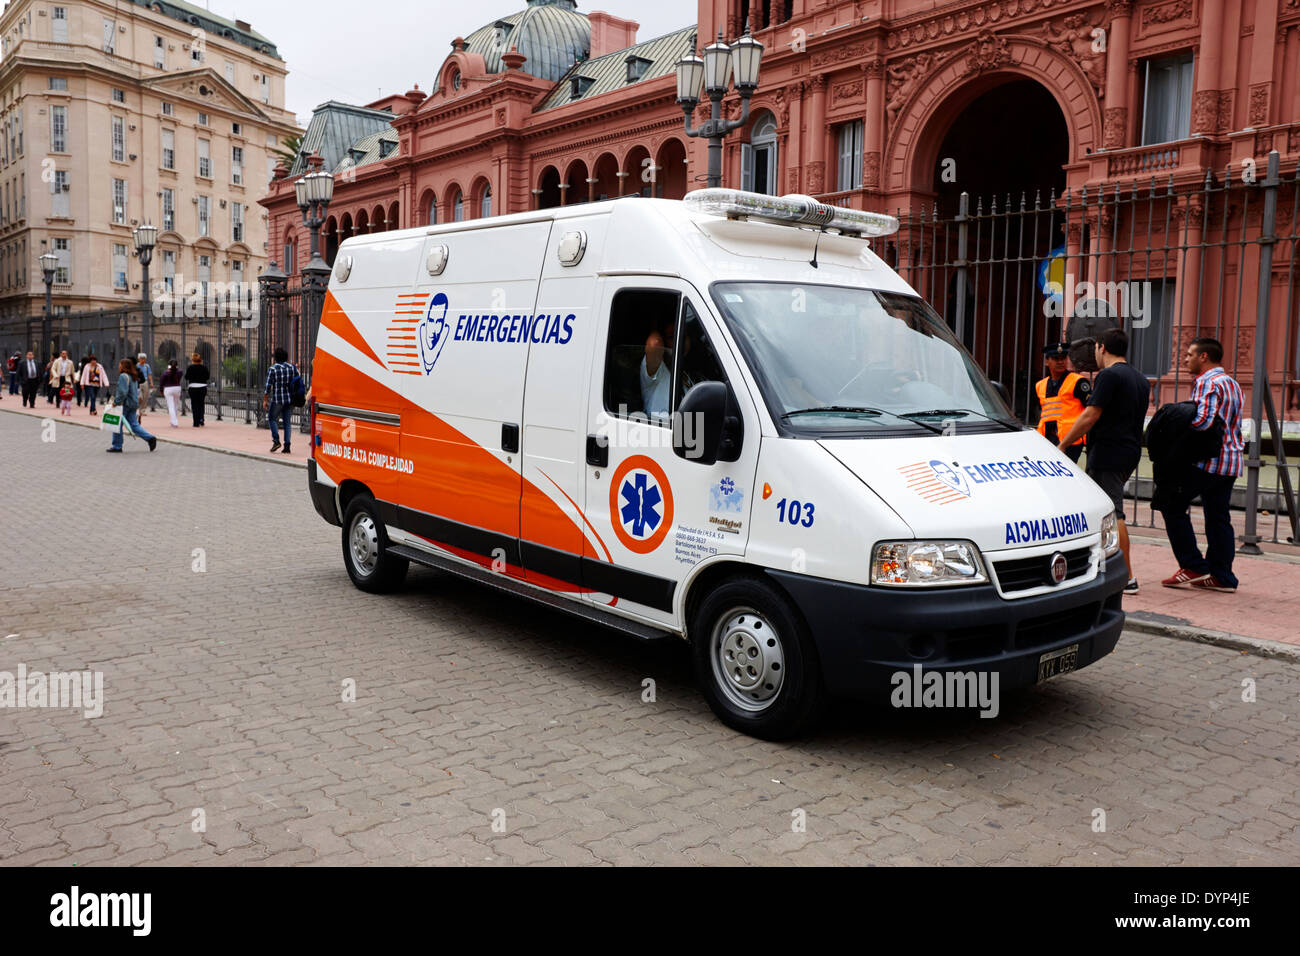 emergency ambulance downtown Buenos Aires Argentina - Stock Image